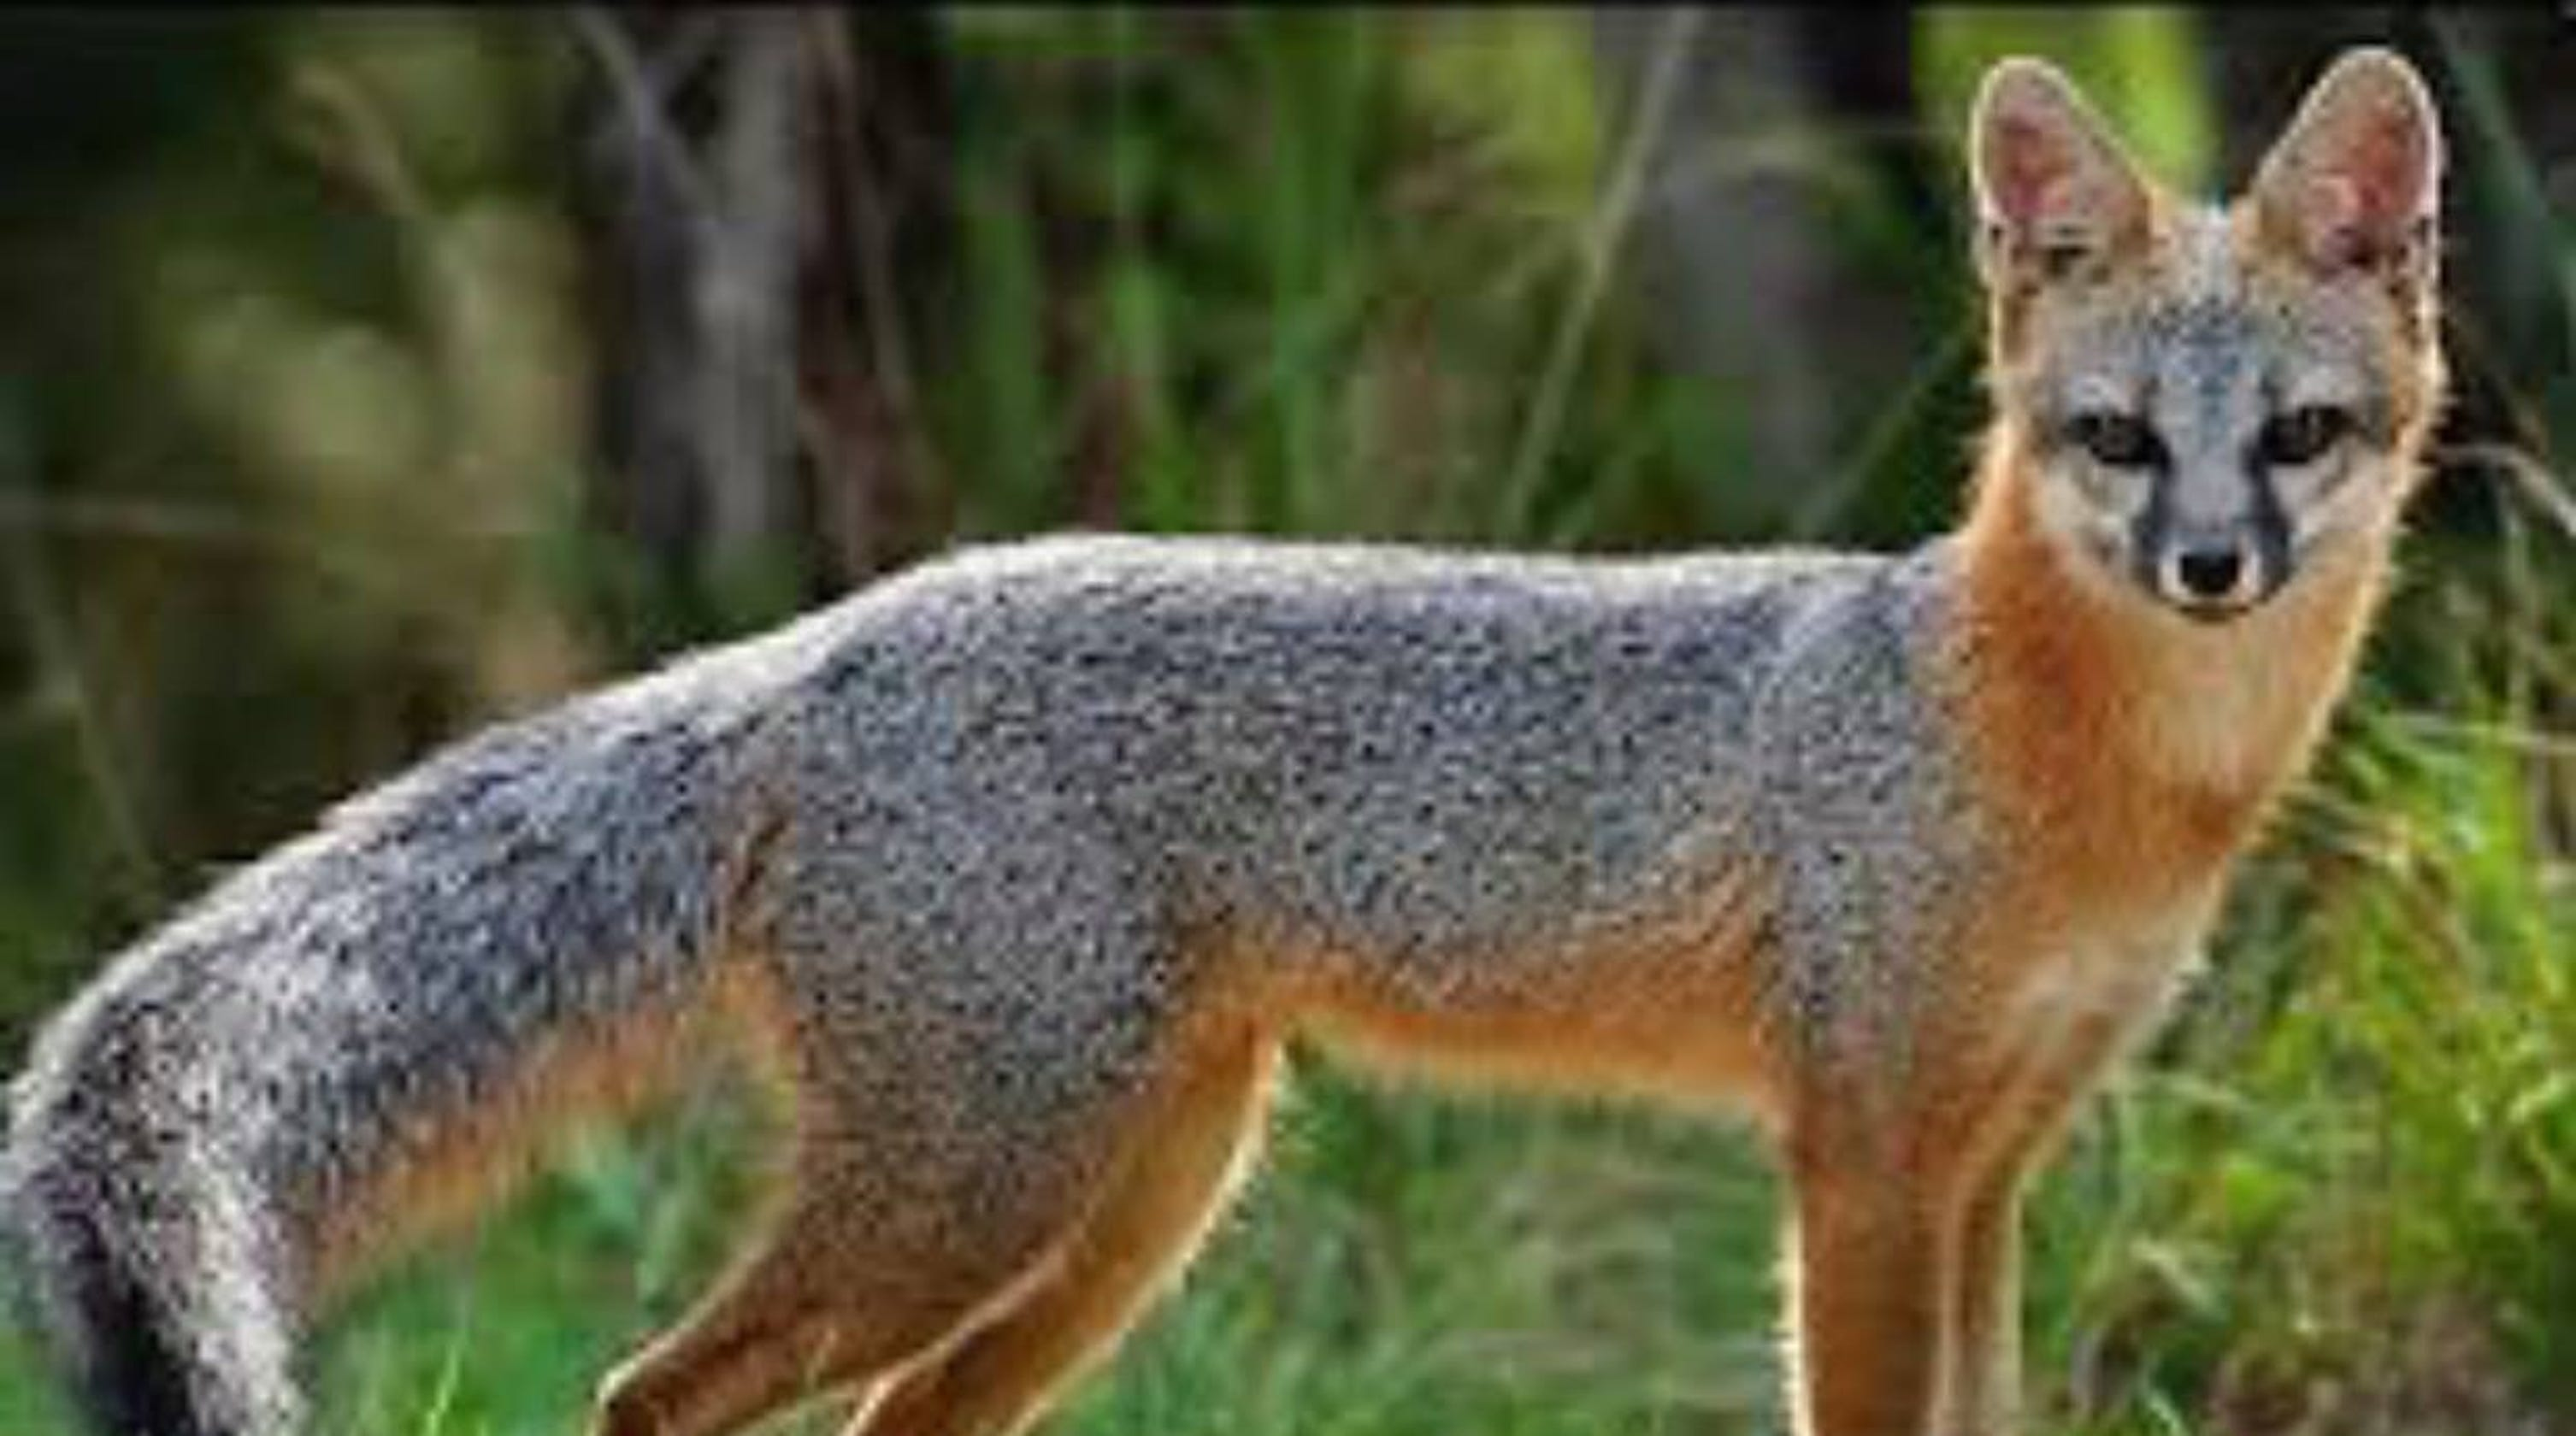 Morris plains nj mother bitten by fox while gardening